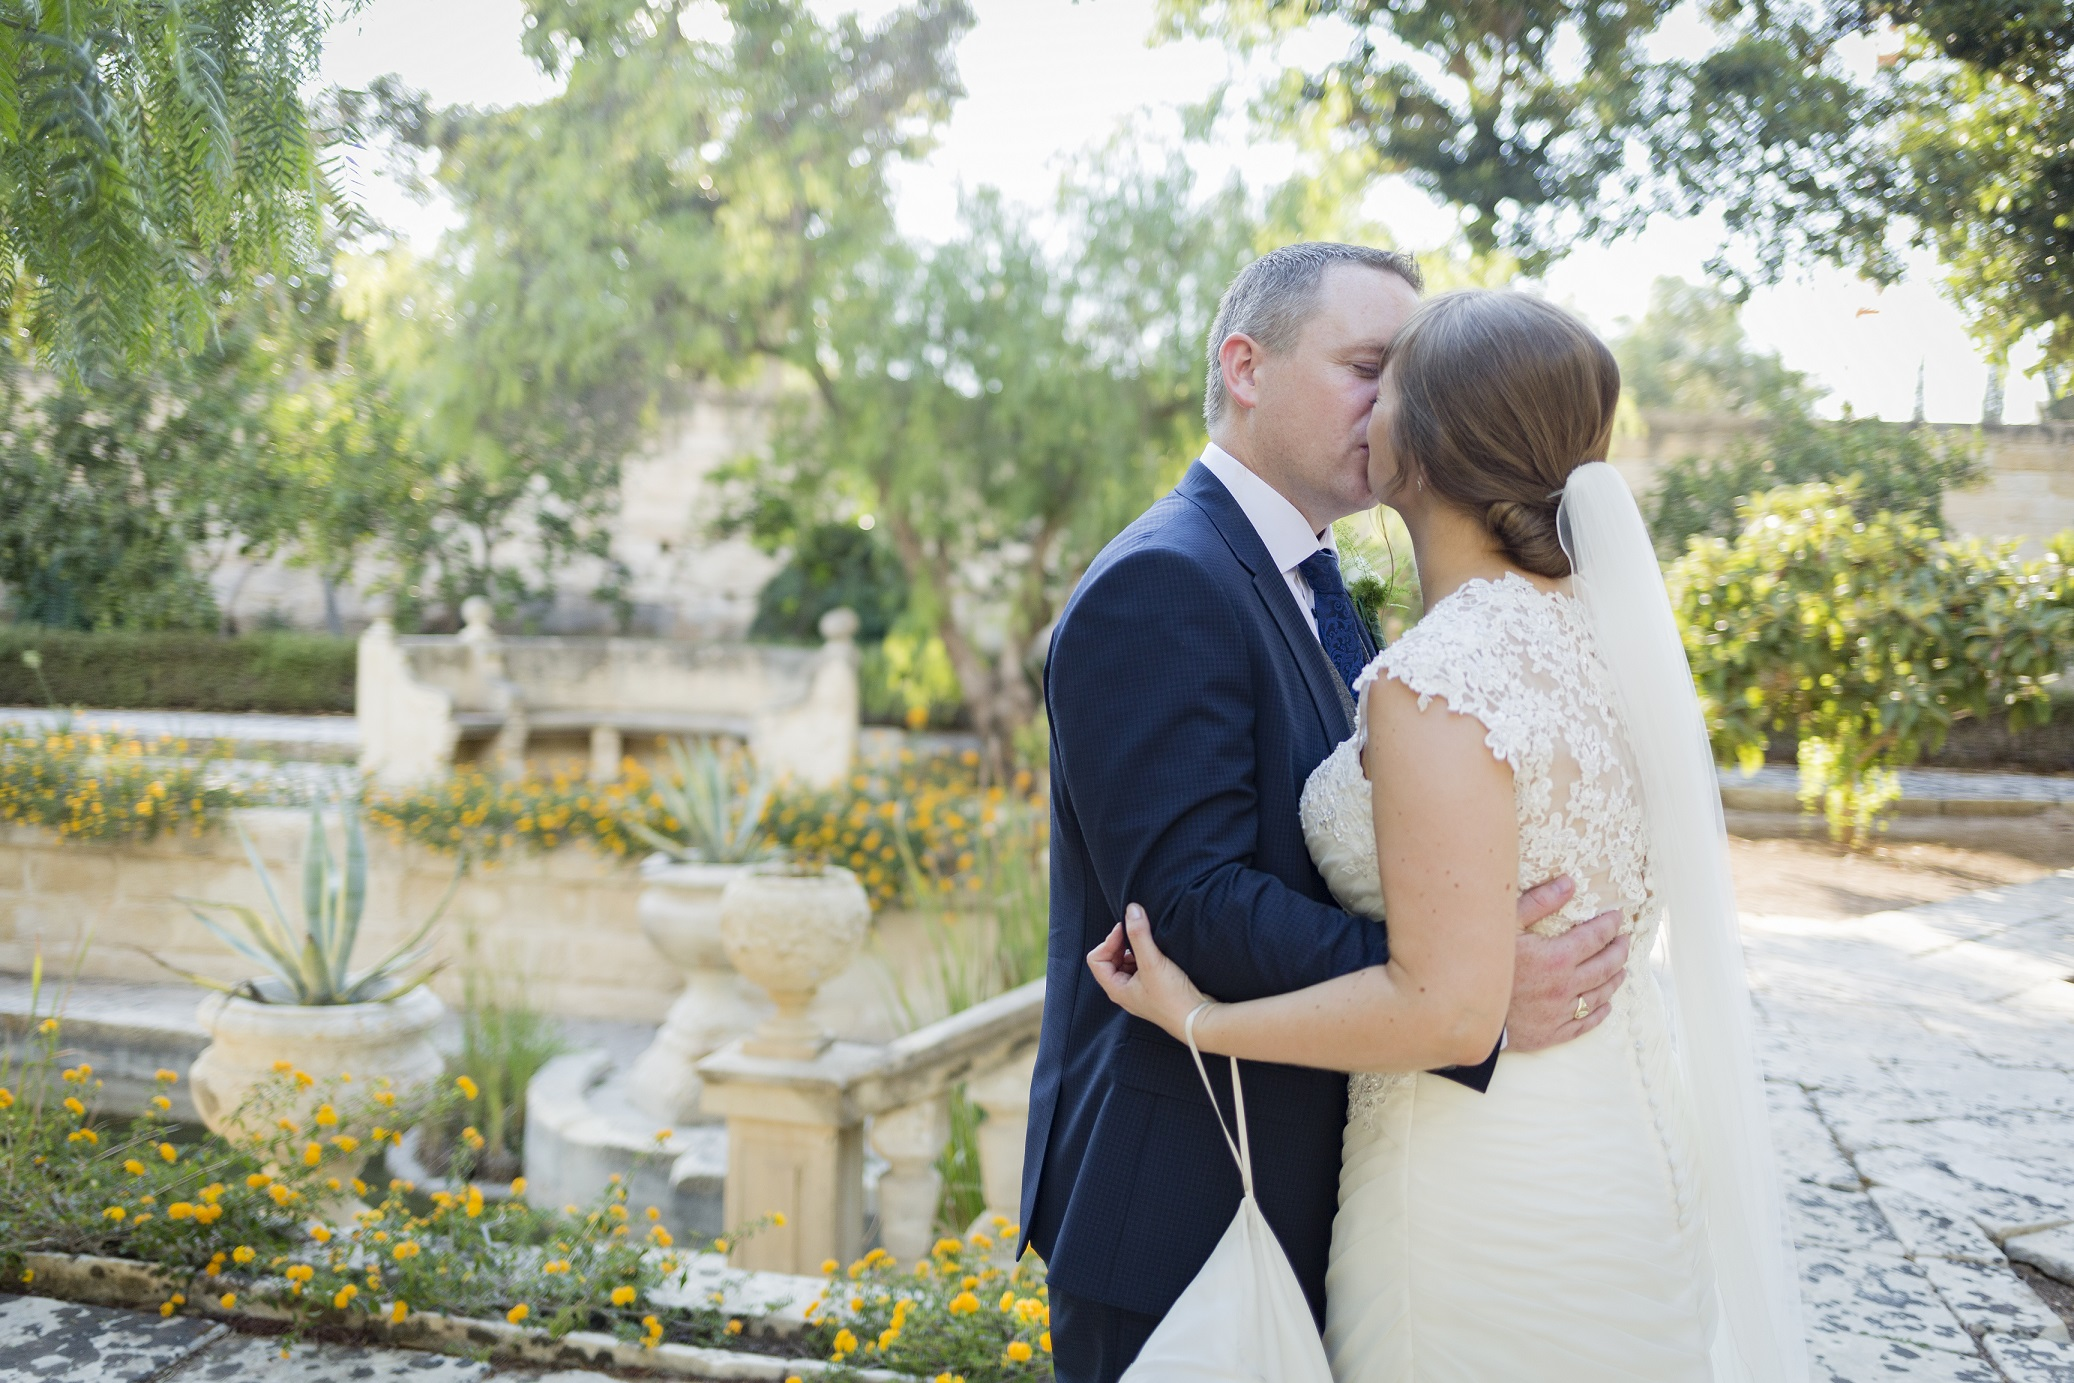 Wed in Malta Wedding at Villa Bologna